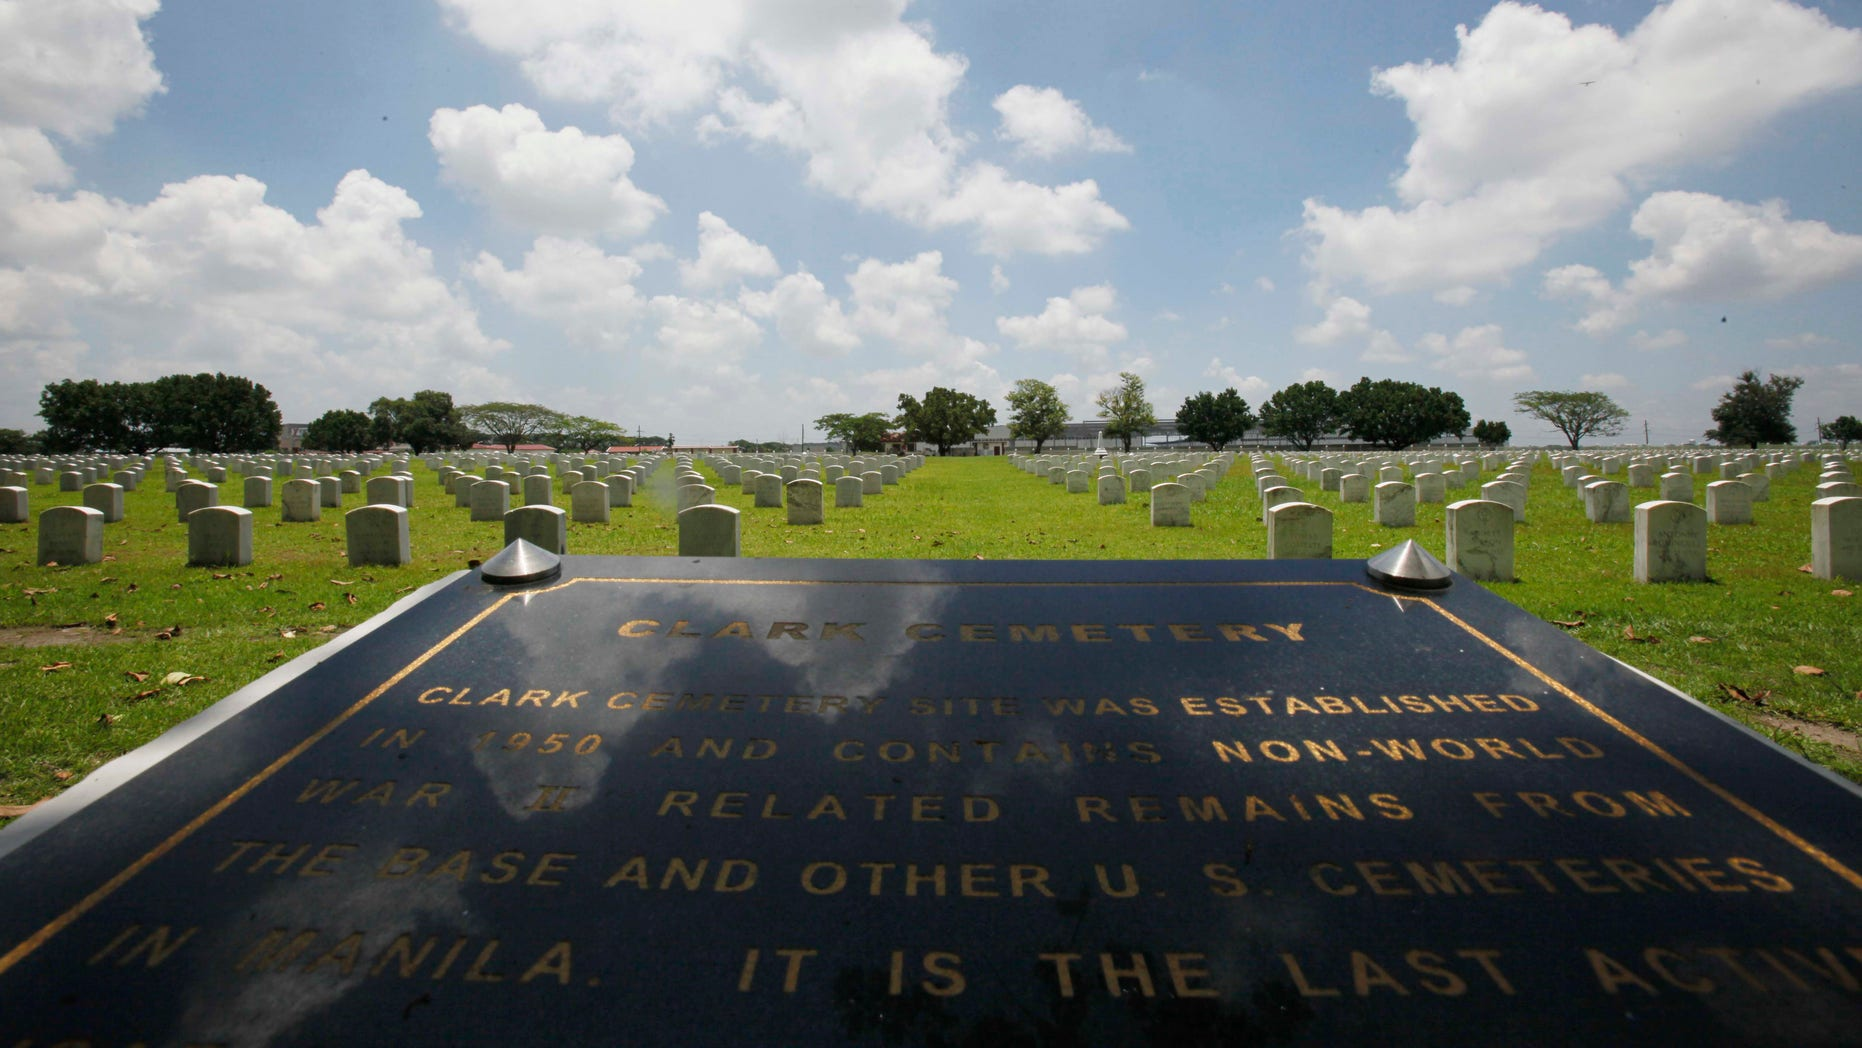 FILE - In this In this July 1, 2011 file photo, a Clark Veterans Cemetery marker faces more than 8,000 tombstones at the sprawling Clark Economic Zone, a former U.S. Air Force base in Dau, Pampanga province in northern Philippines. U.S. and Philippine officials signed an agreement Monday, Dec. 16, 2013, allowing Washington to restore the cemetery where the graves of thousands of American servicemen and dependents have been covered in ash since Mount Pinatubo's 1991 eruption. (AP Photo/Bullit Marquez, File)